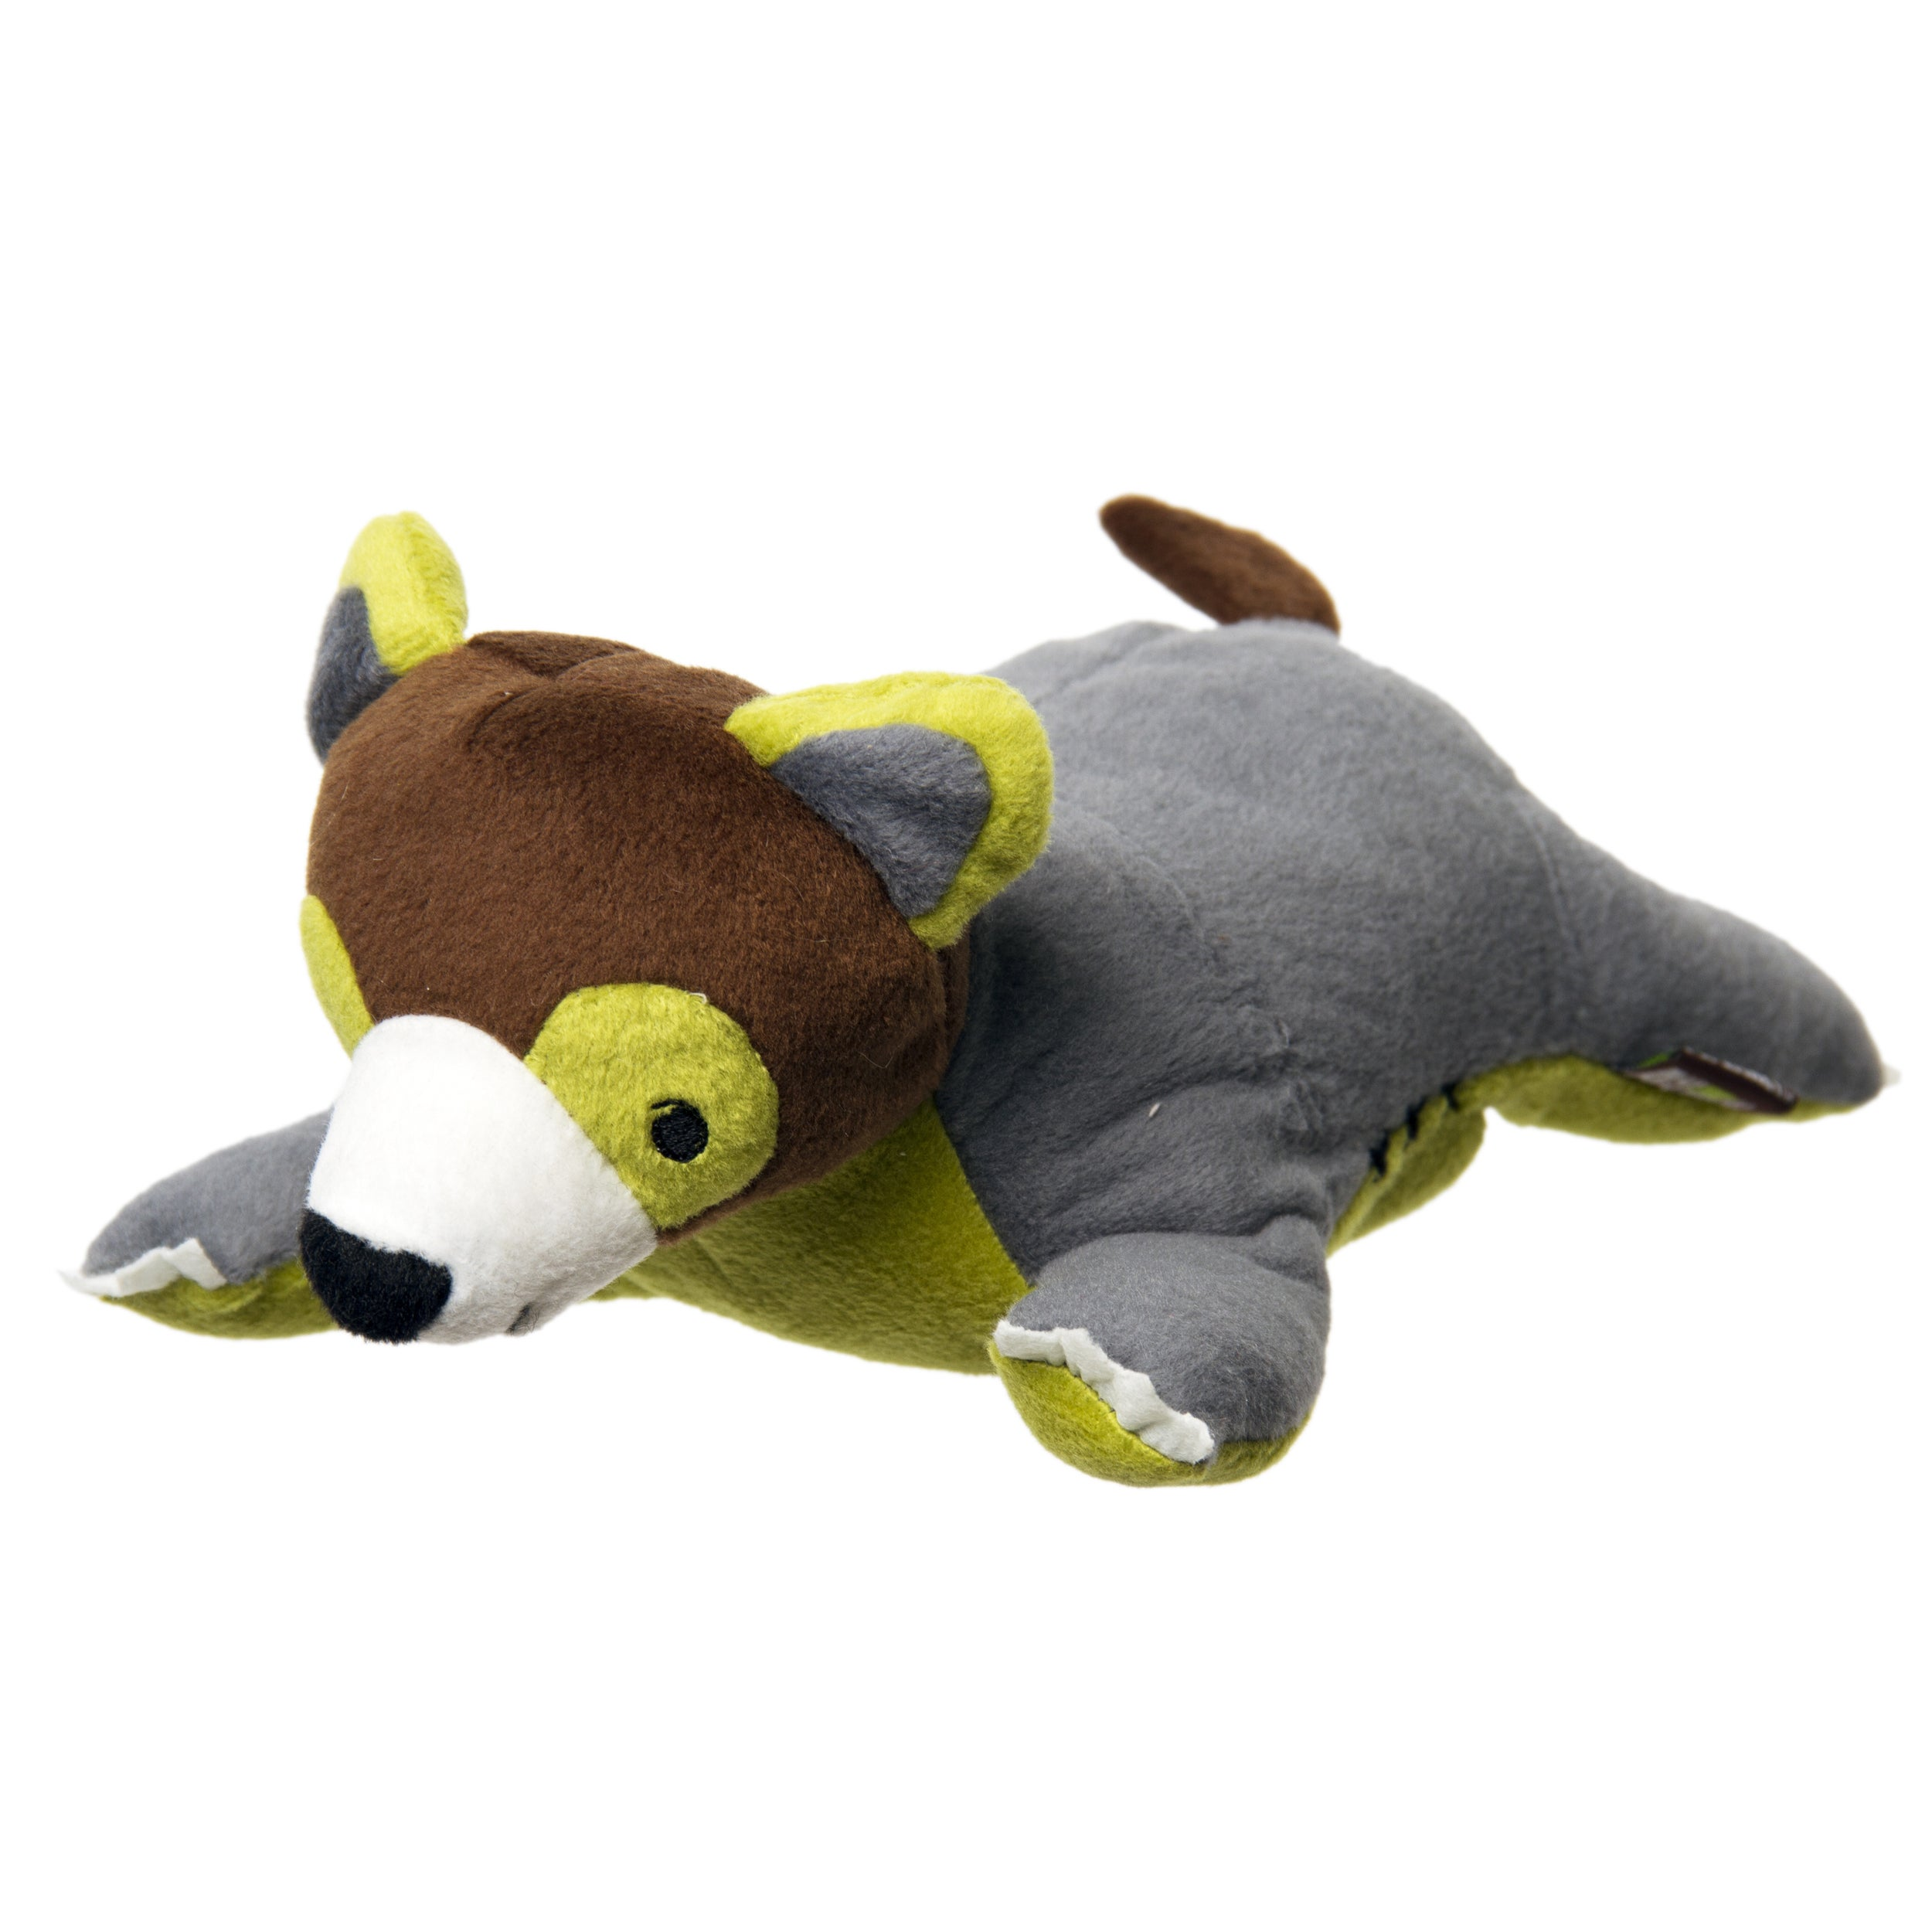 Shop Animal Planet Plush Toy 4 Pack Free Shipping On Orders Over